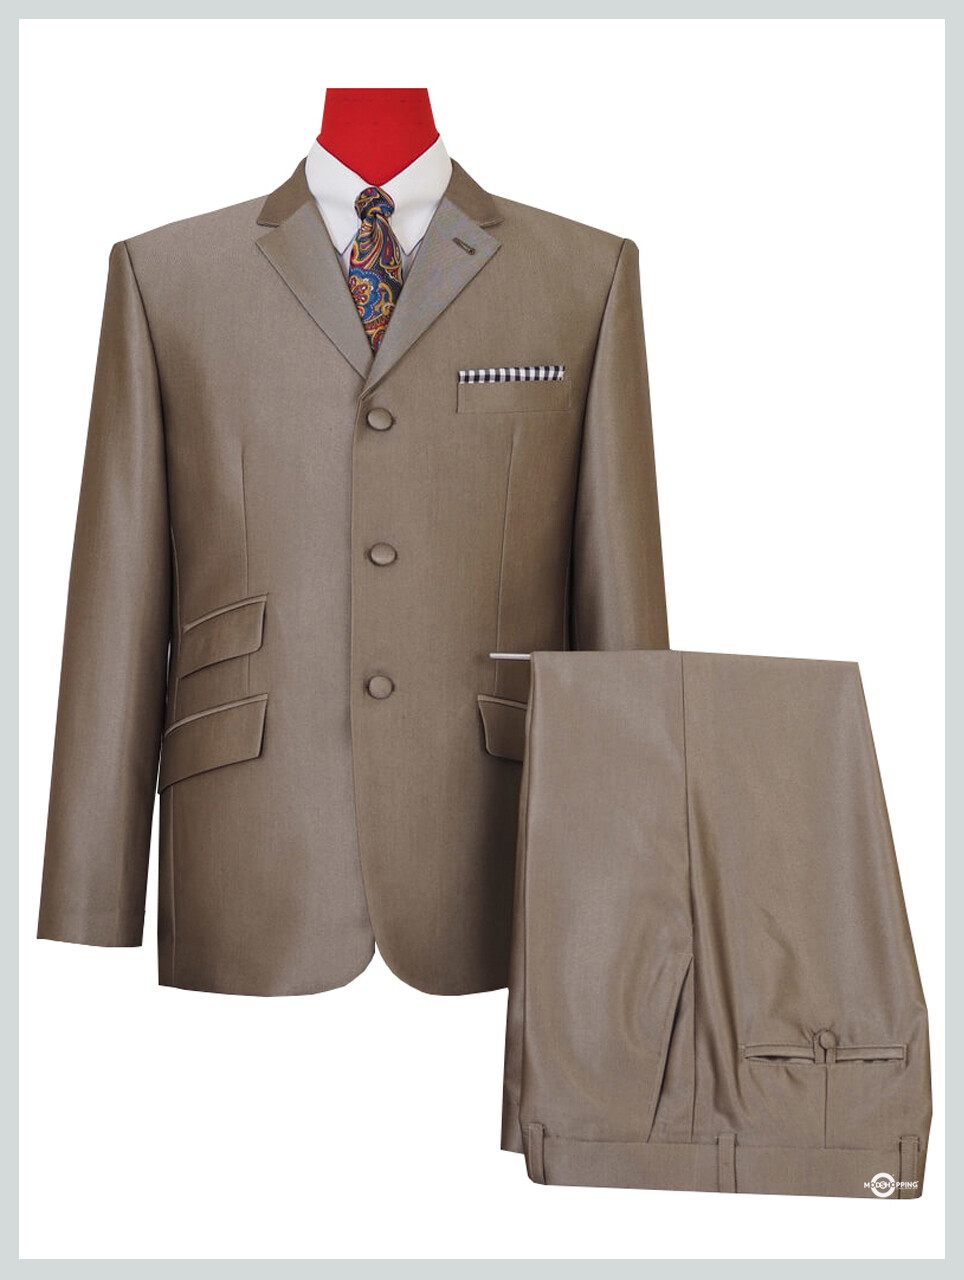 tonic suit|mod clothing 60s fashion gold tonic suit for men